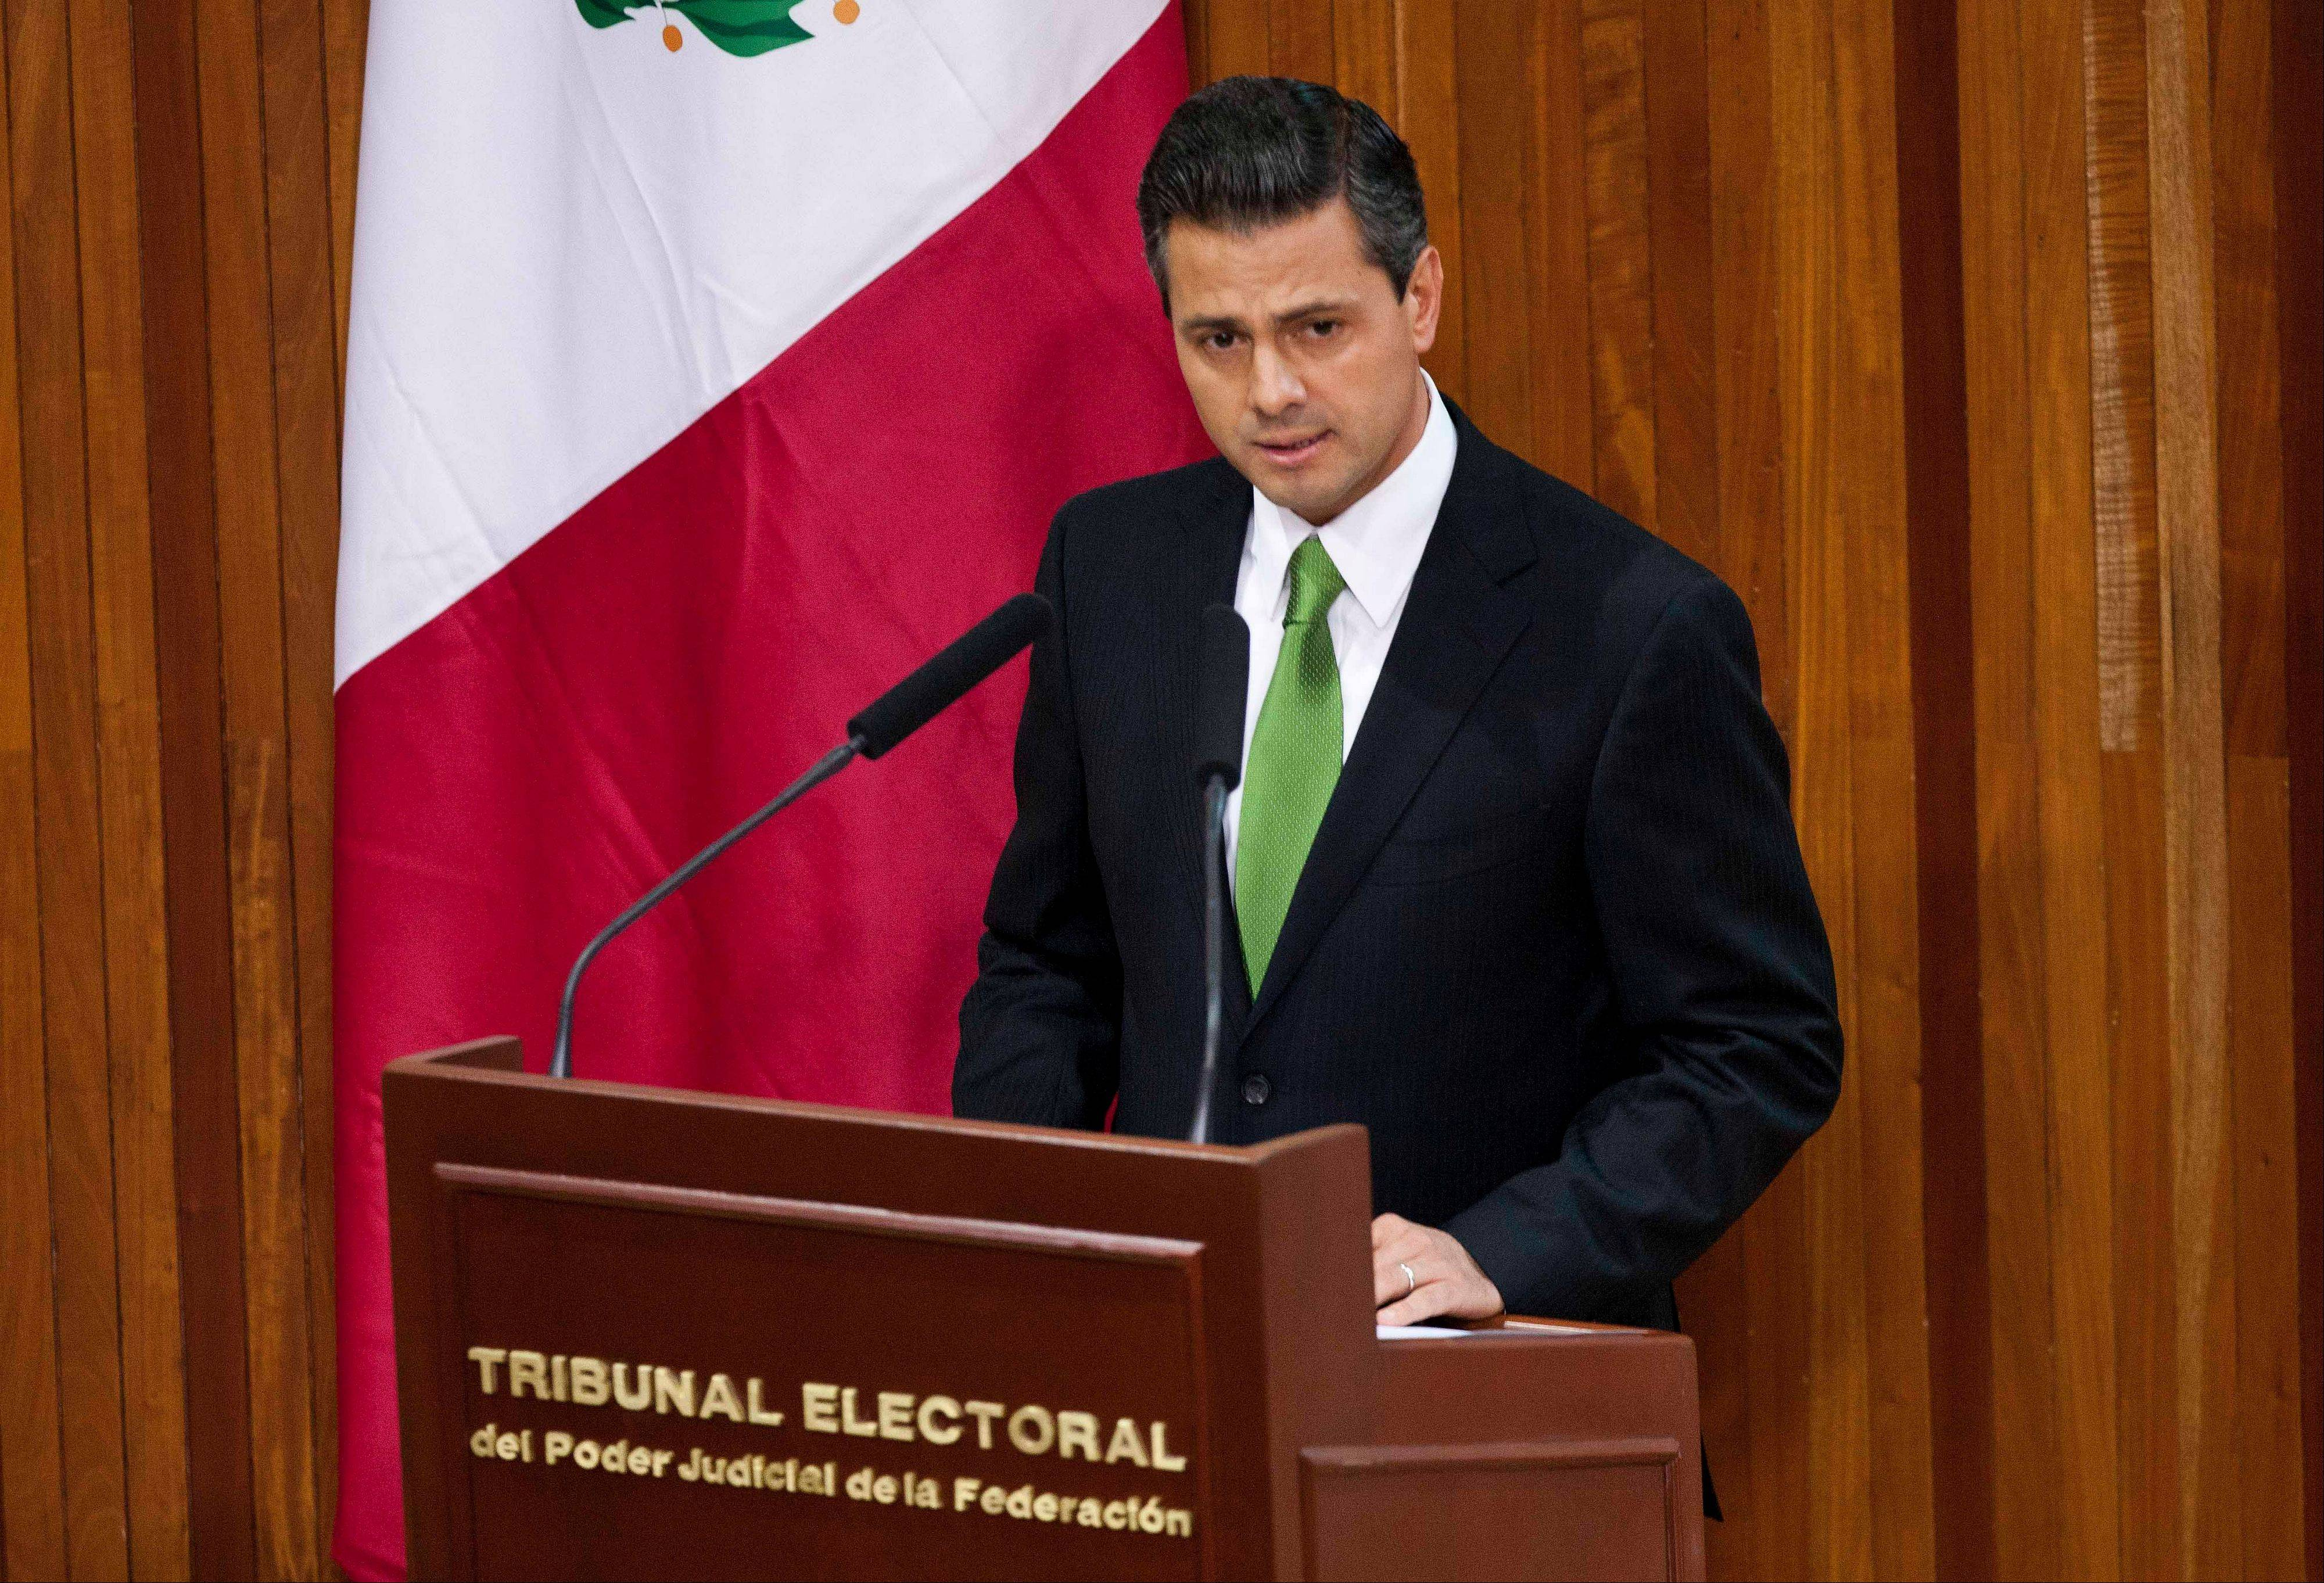 Mexico's President-elect Enrique Pena Nieto of the Institutional Revolutionary Party (PRI) speaks Friday during a ceremony at which the Federal Electoral Tribunal declared he won the majority of votes in last July's presidential election, in Mexico City.